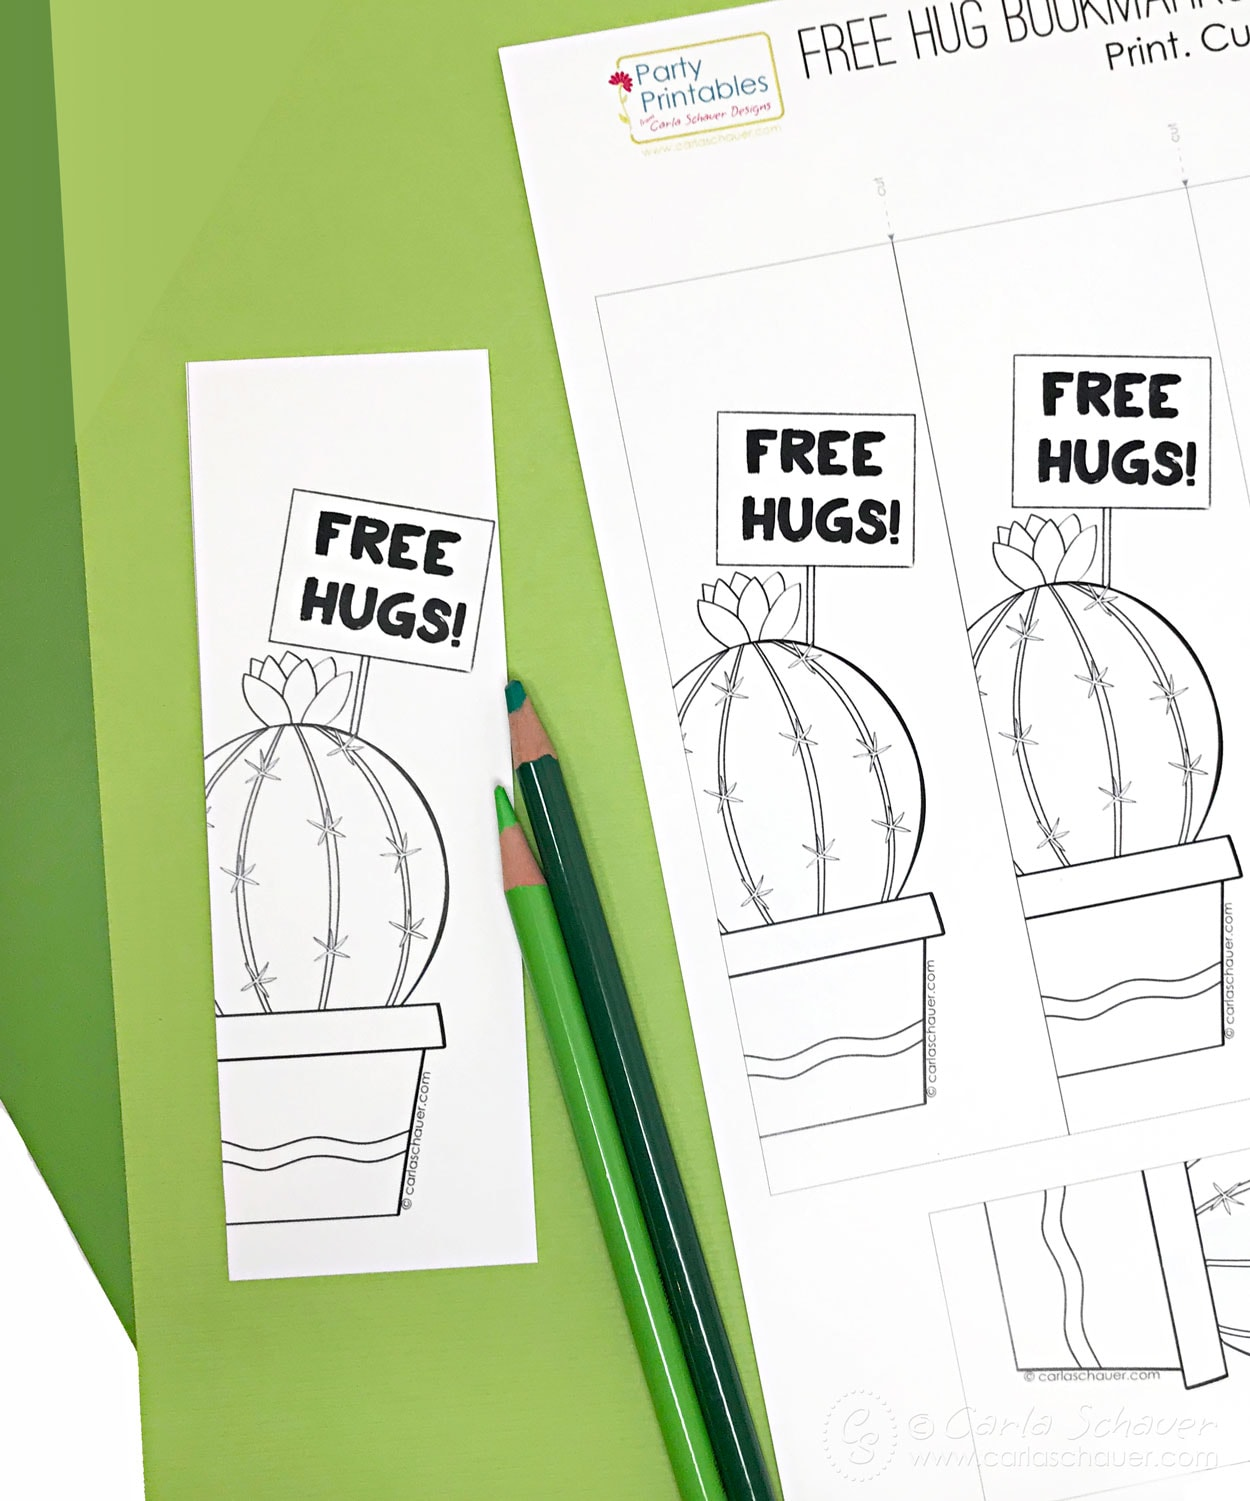 Printed cactus bookmark sheet and colored pencils on green background